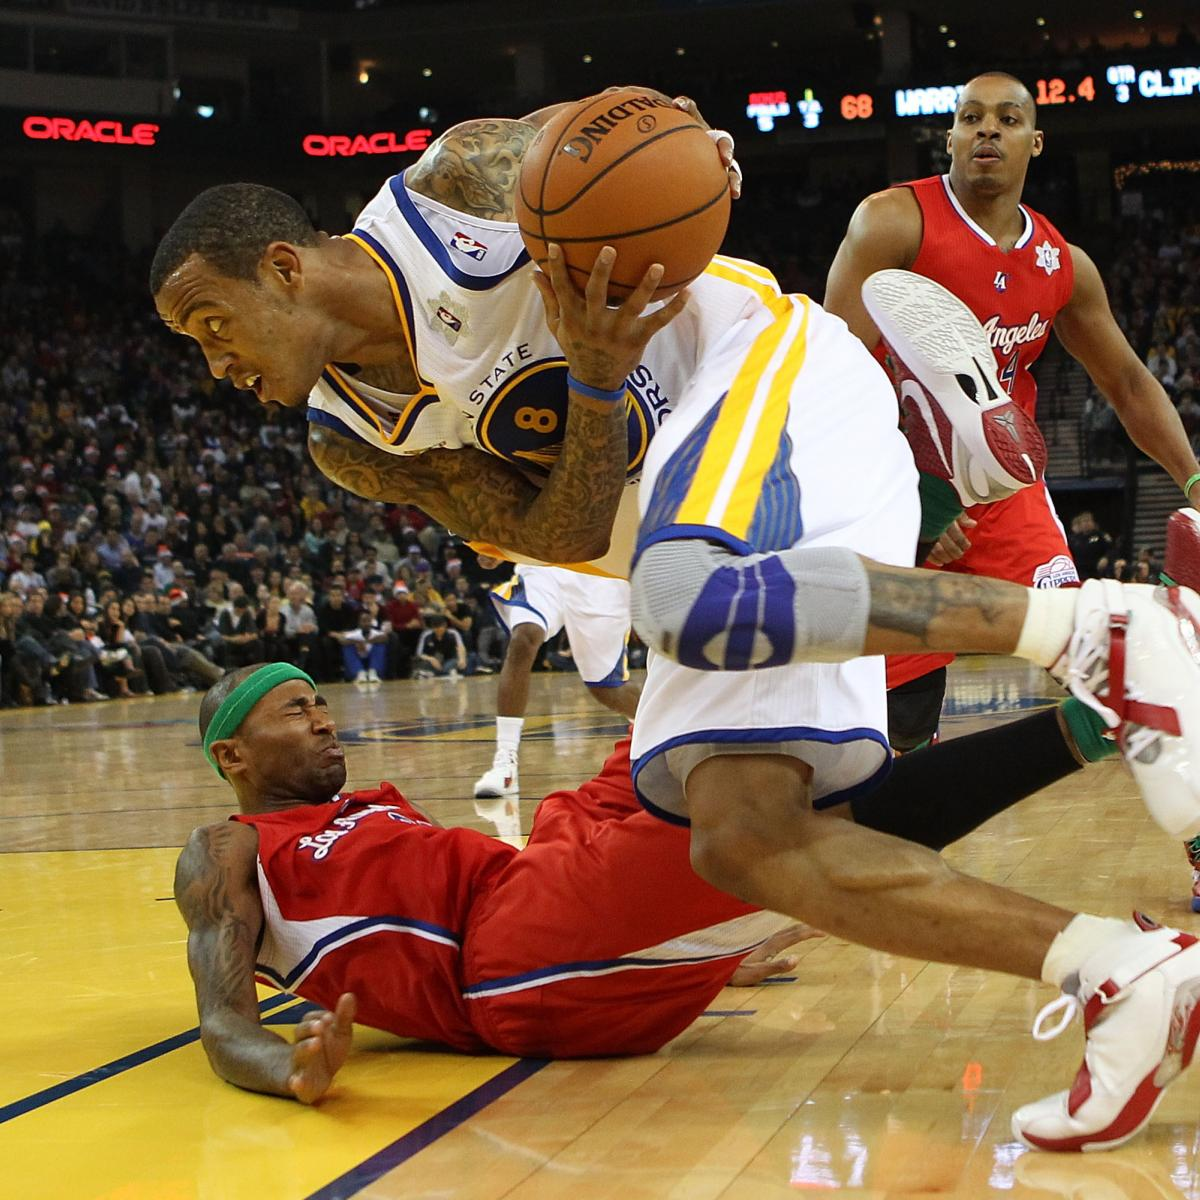 Nuggets Clippers Highlights: J.R. Smith Not Best Fit For Los Angeles Clippers Team That